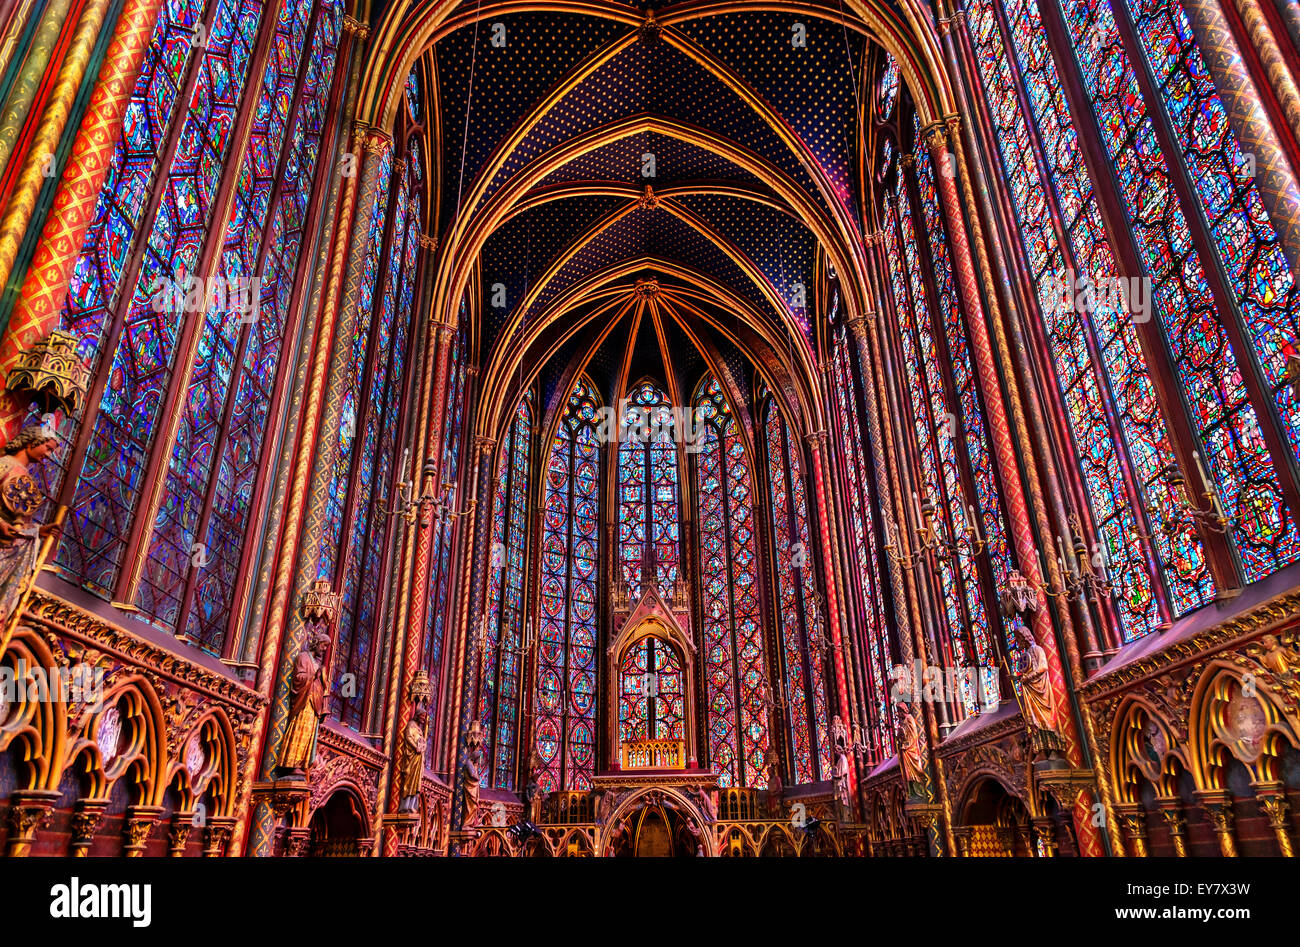 Stained Glass Cathedral Saint Chapelle Paris France. - Stock Image